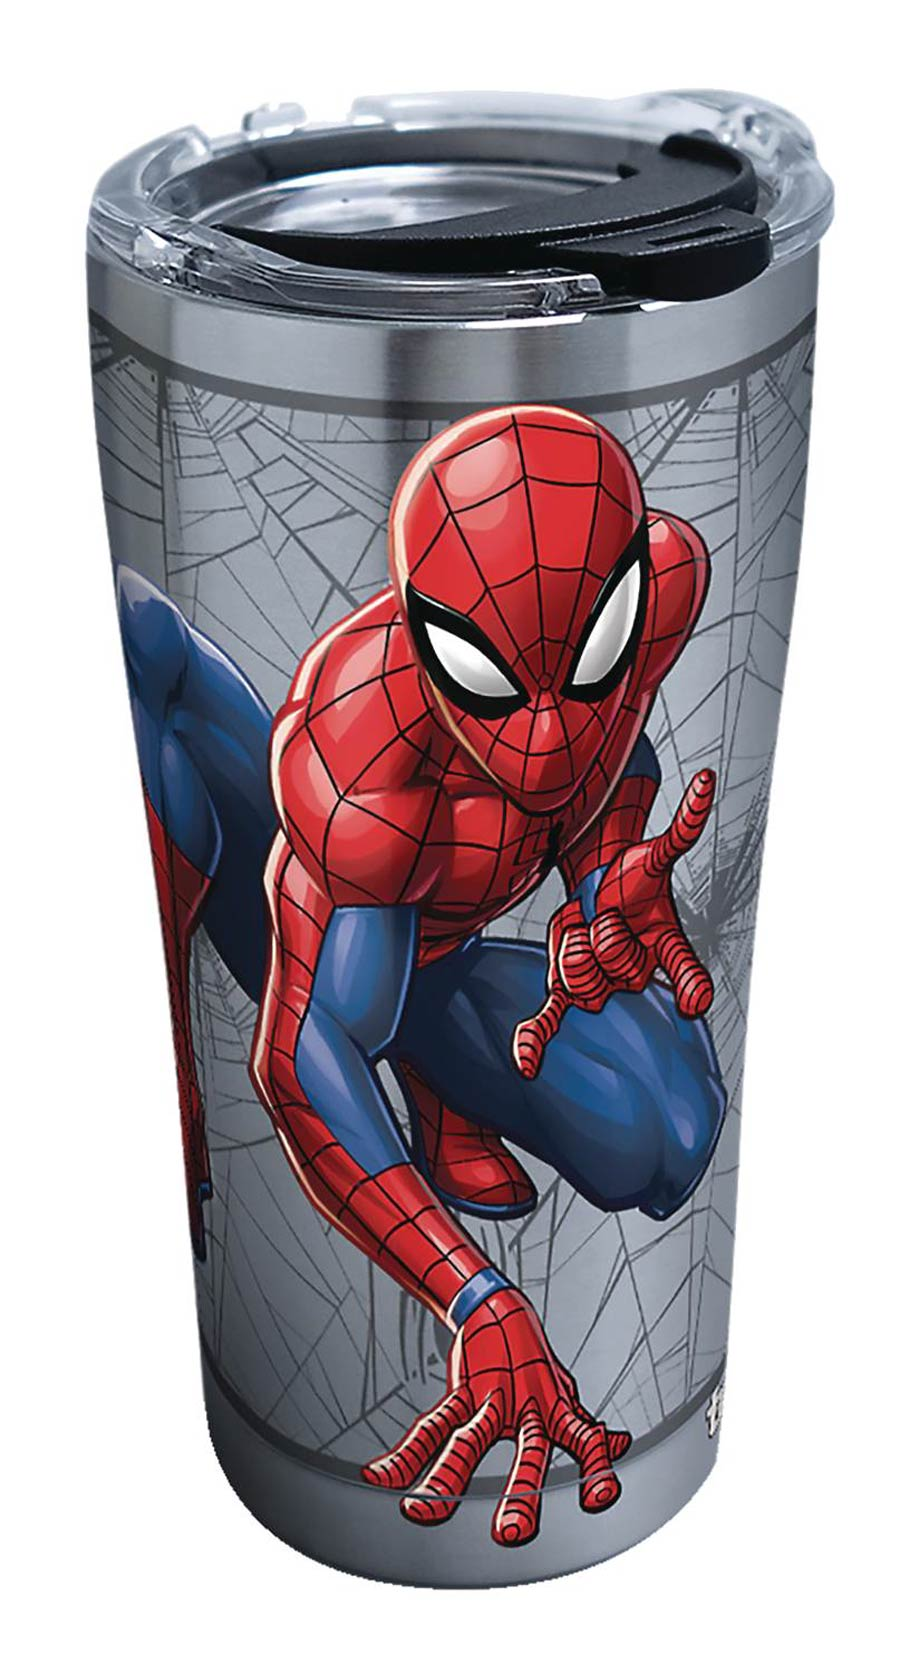 Spider-Man Spider Web Stainless Steel 20-Ounce Tumbler With Lid